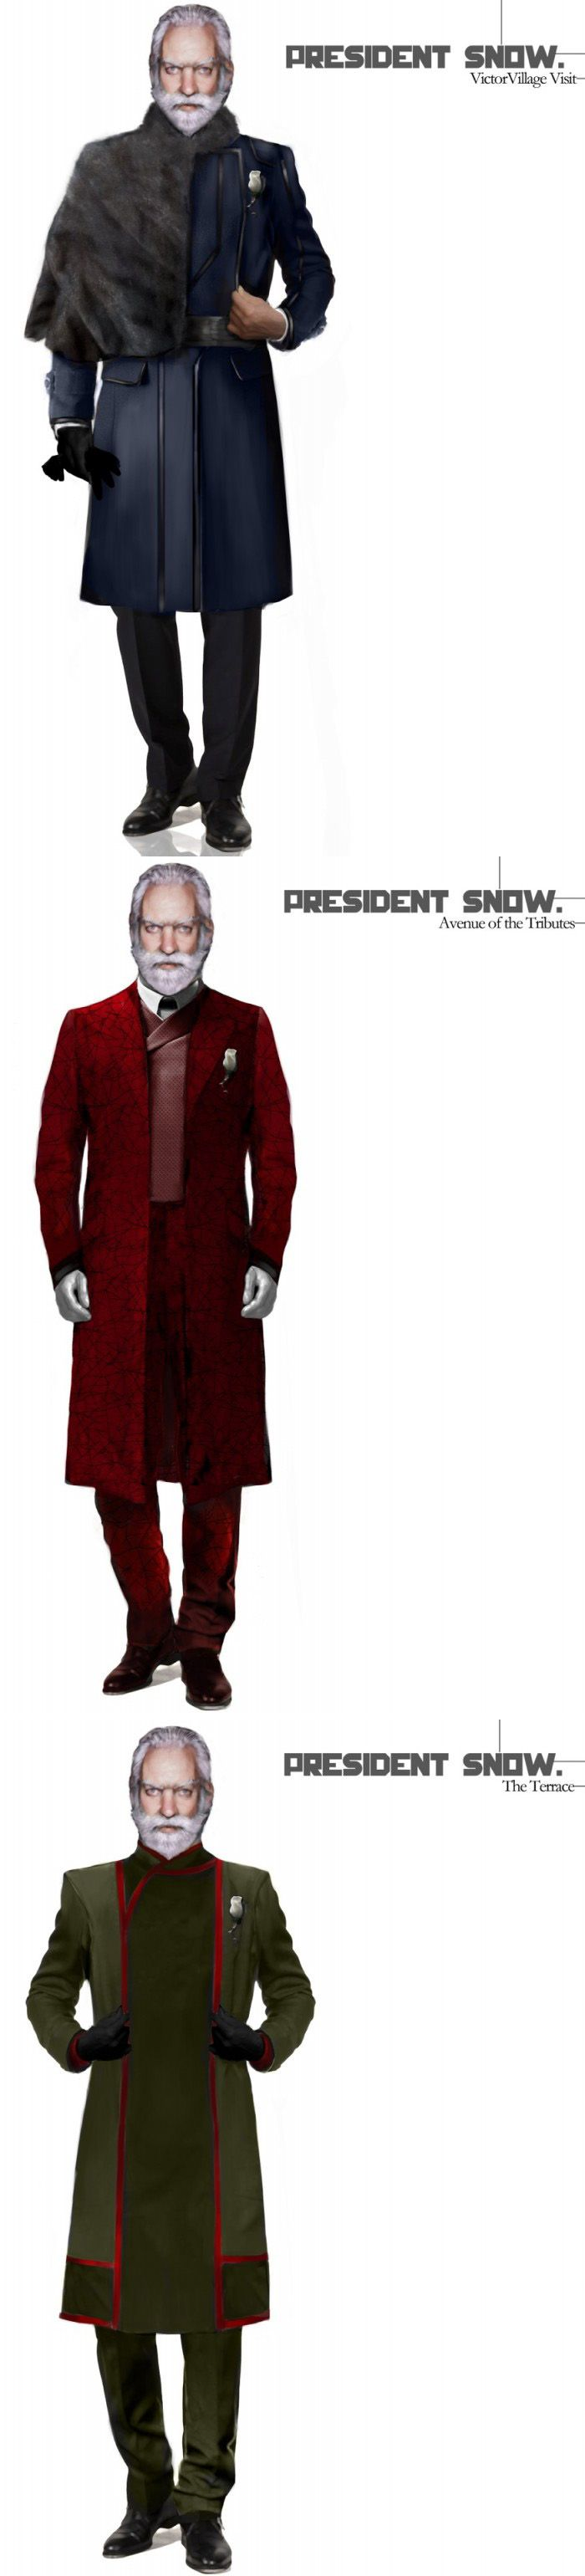 President Snow costume designs by Trish Summerville | costume log ...